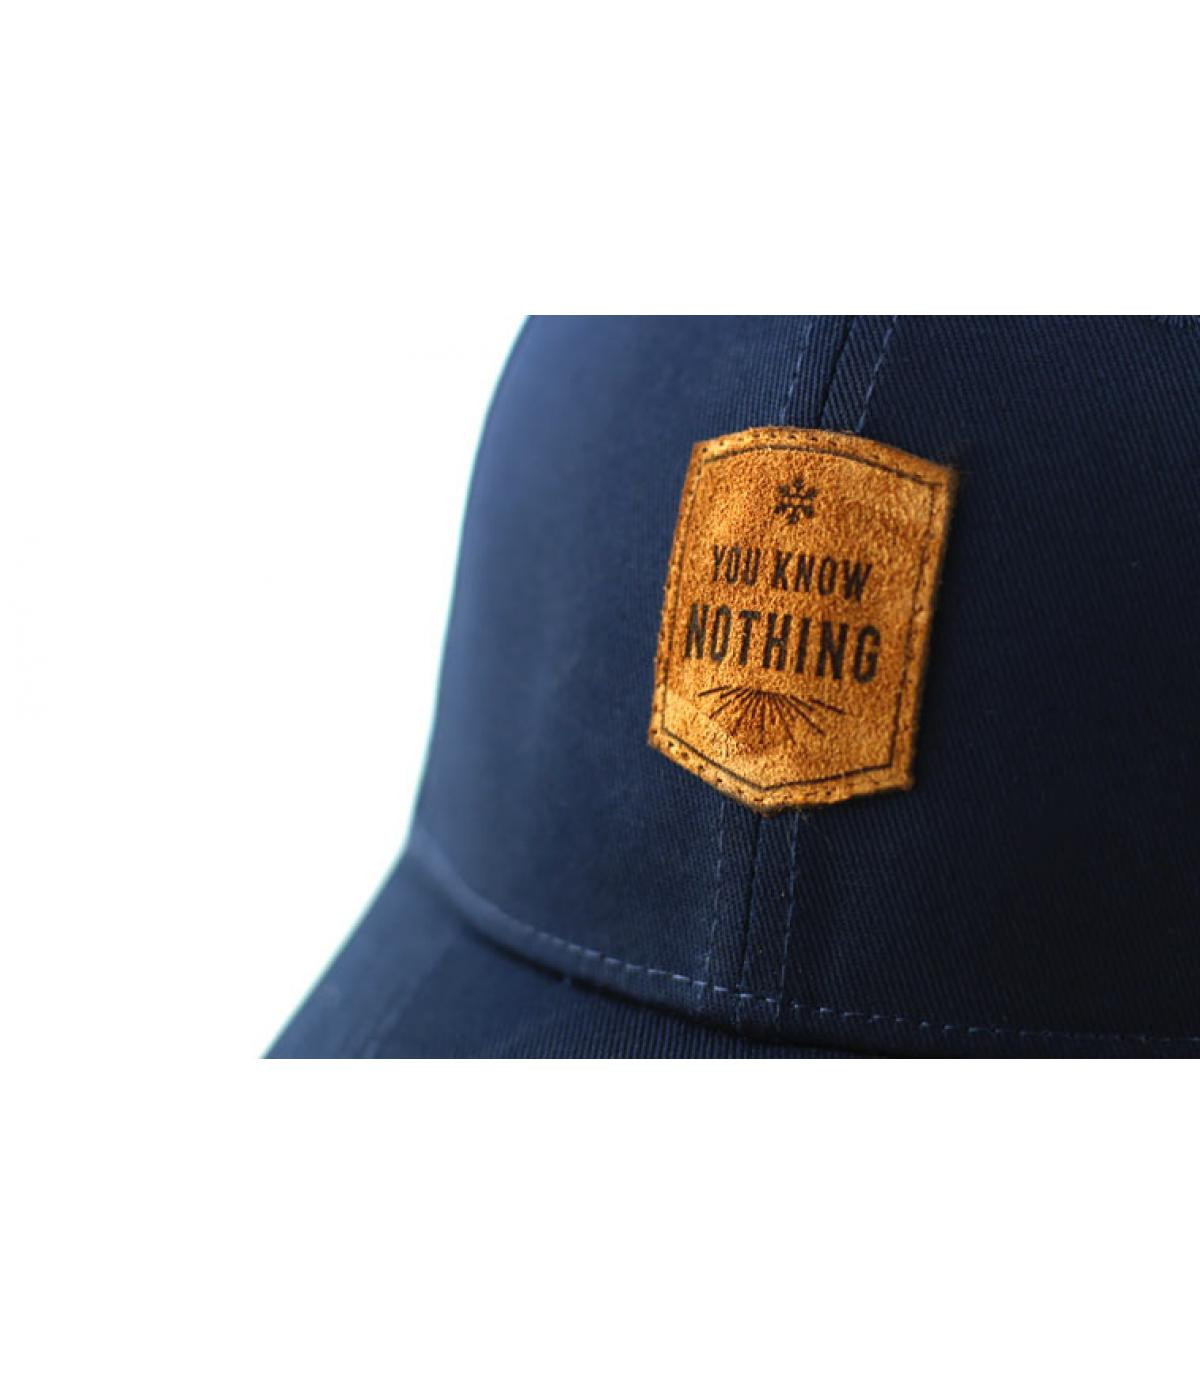 Details Curve You Know Nothing navy - Abbildung 3